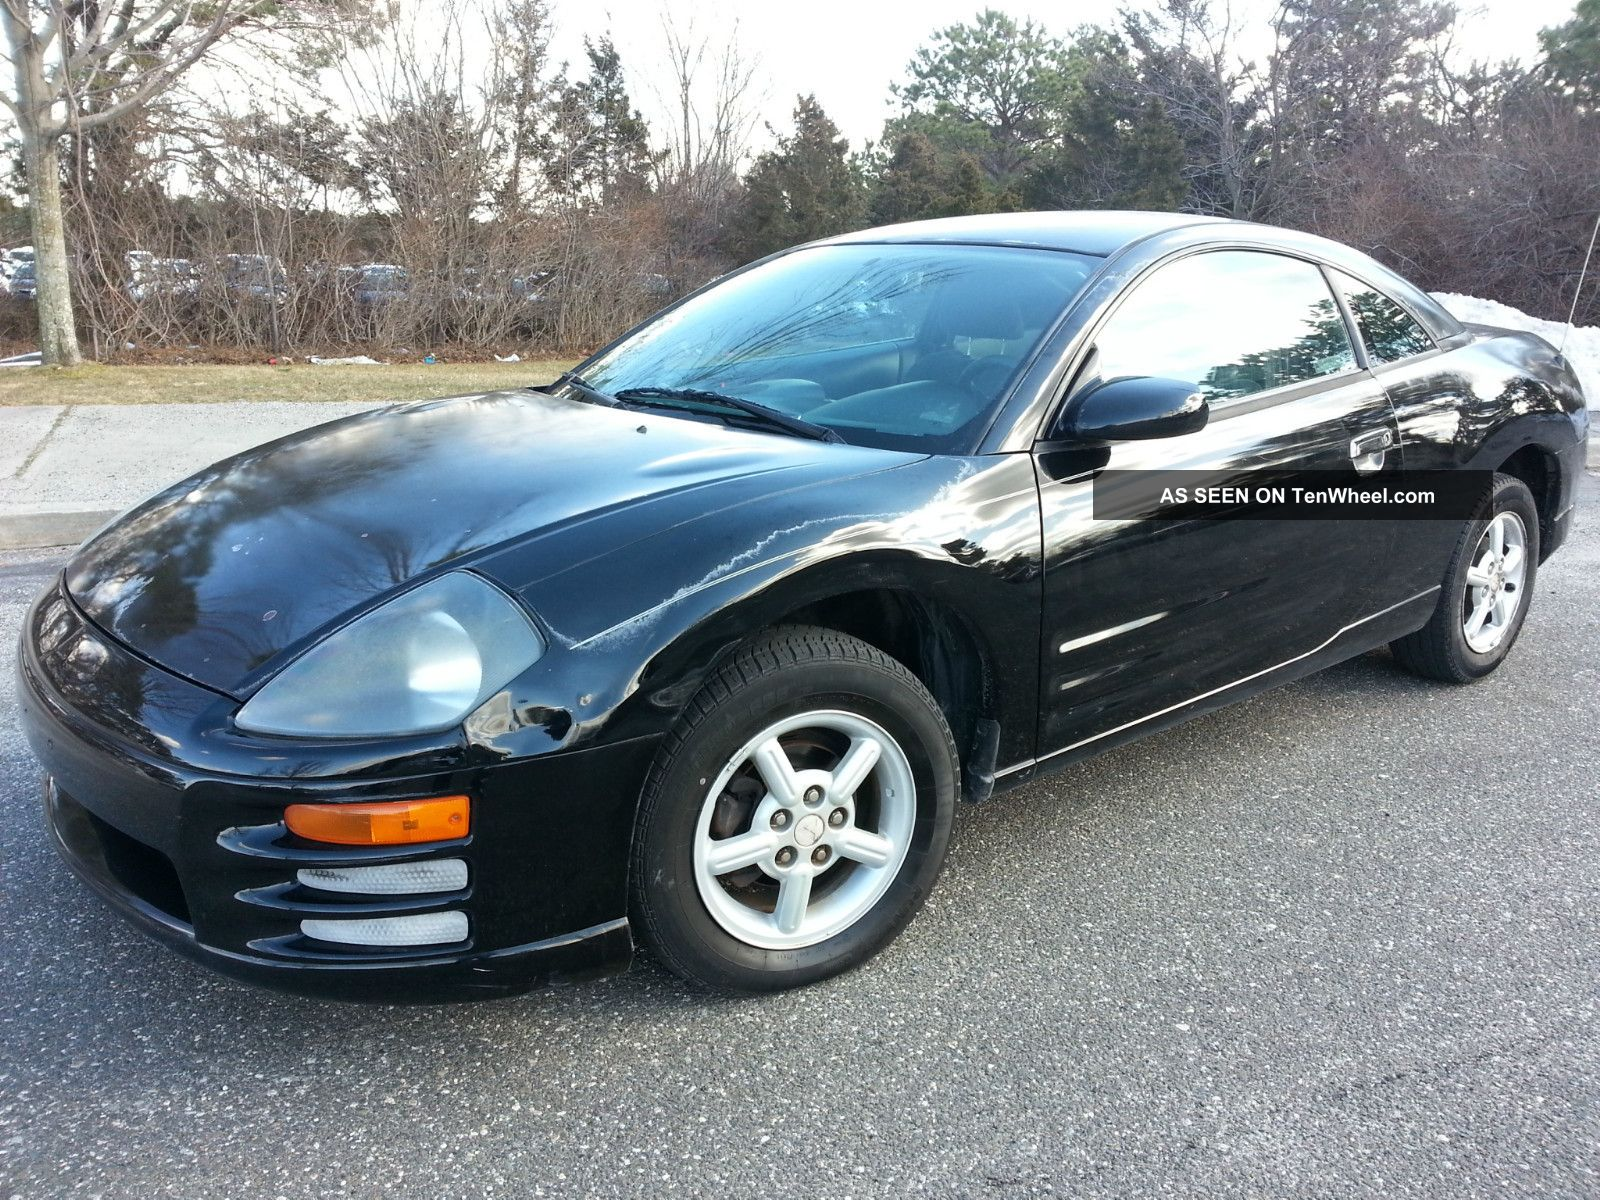 2000 Mitsubishi Eclipse Rs Crazy Automatic 2001 2002 2003 1999 Eclipse